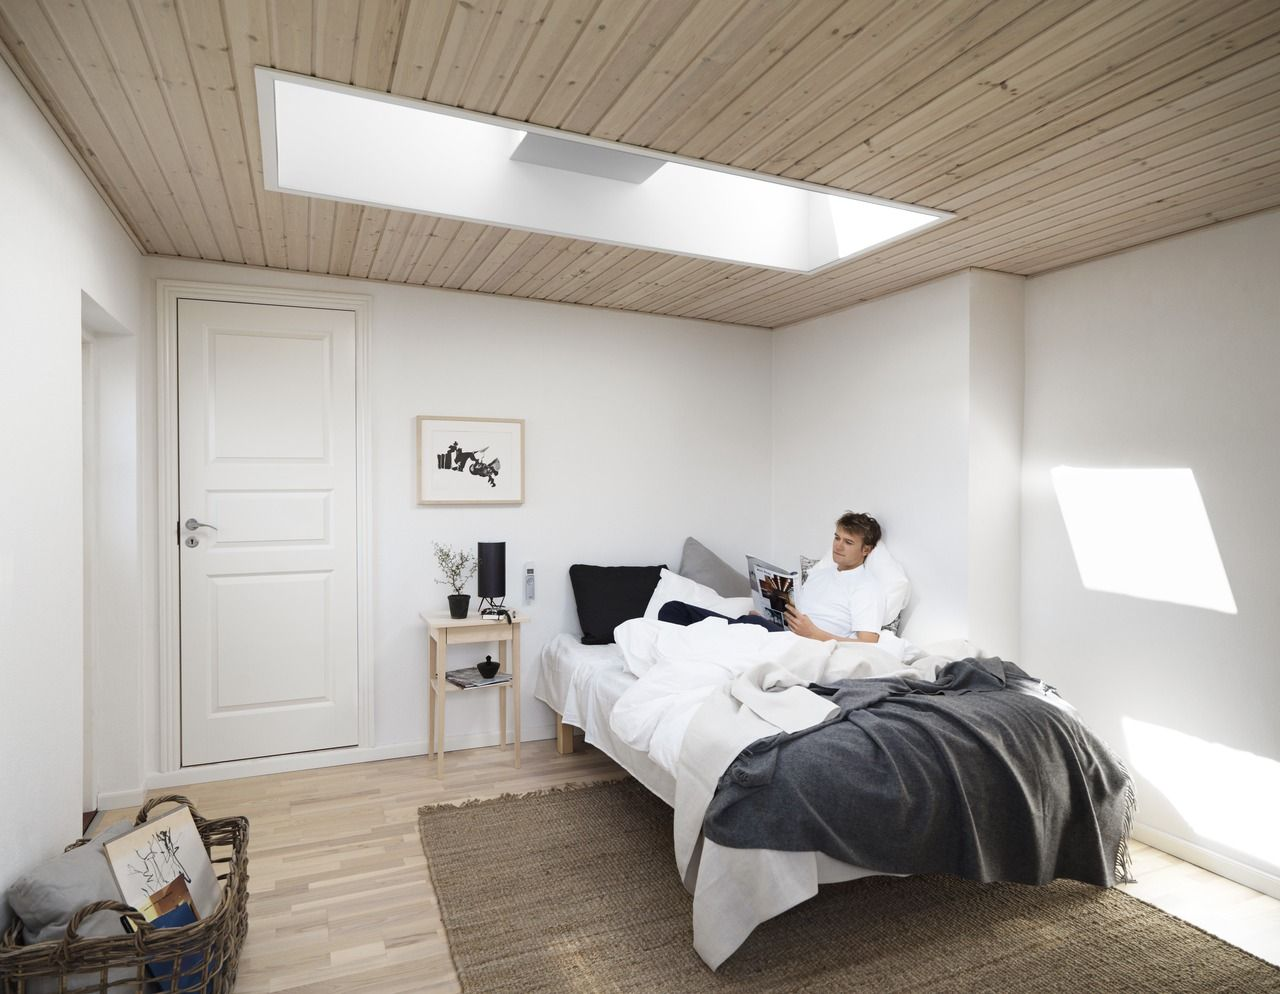 Fenster Velux Velux Flat Roof Window In Bedroom Bringing Daylight To Your Home